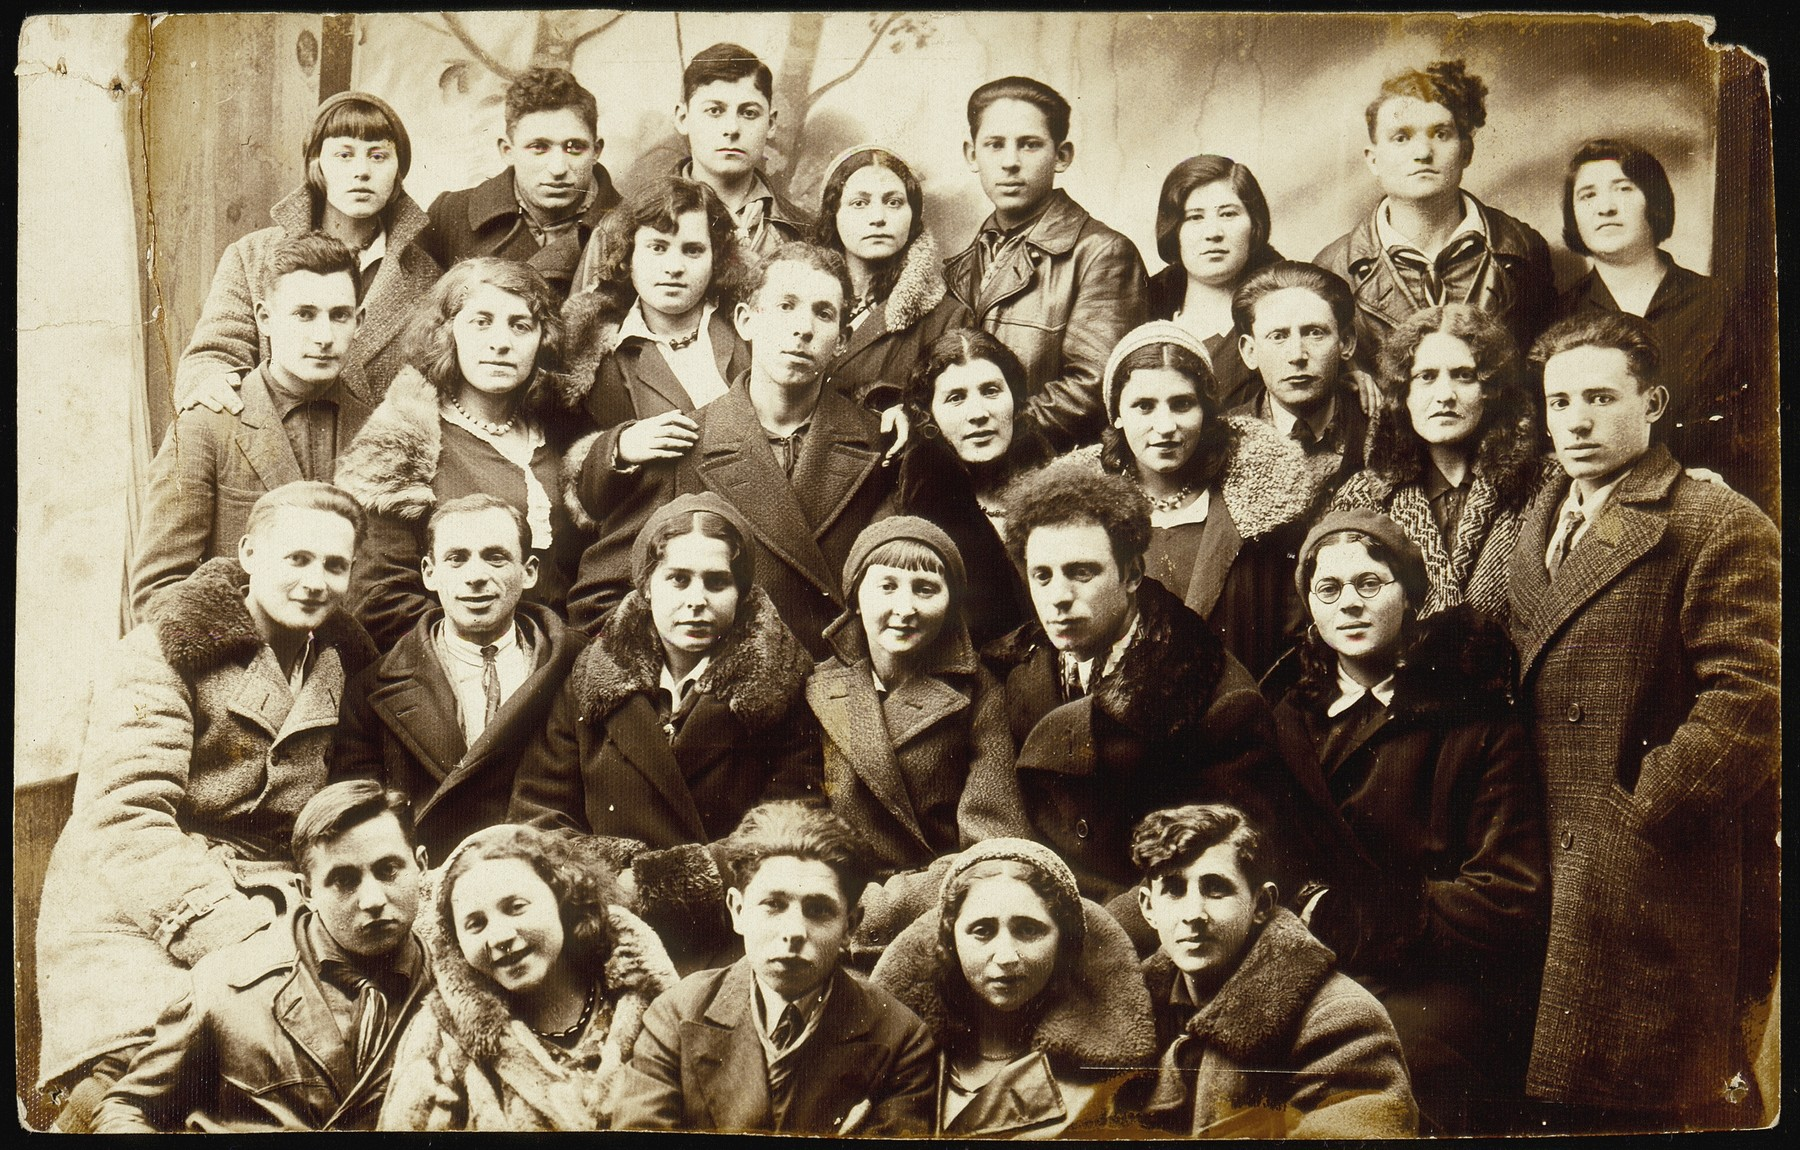 Group portrait of members of the Zionist youth movement, Hashomer Hatzair, from Eisiskes and surrounding towns.      Among those pictured are: back row, right to left: Hinde Gutlevski, visitor, Reshke Gutlevski, visitor, Kreinke Bichwid, Muni Zahavi, Bichwid (sister of Kreinke); second row from the top, right to left:  Motke Burstein, Flora Kagan, Shmuel Berkowicz, unknown, Matikanski, unknown, Bichwid (first name unknown), Rina Lewinson, Hanan Polaczek; third row from the top, right to left: Etele Lubetski, visitor, Esther Katz Resnik, Miriam Koppelman Ruskin, Hayyim Streletski, unknown; front row, right to left: visitor from Olkeniki, Bavale Polaczek, visitor, Leipke Politacki, visitor.    Muni Zahavi, Rina Lewinson, Shmuel Berkowicz, and Bavale Polaczek immigrated to Palestine.  All the others were murdered during the Holocaust.